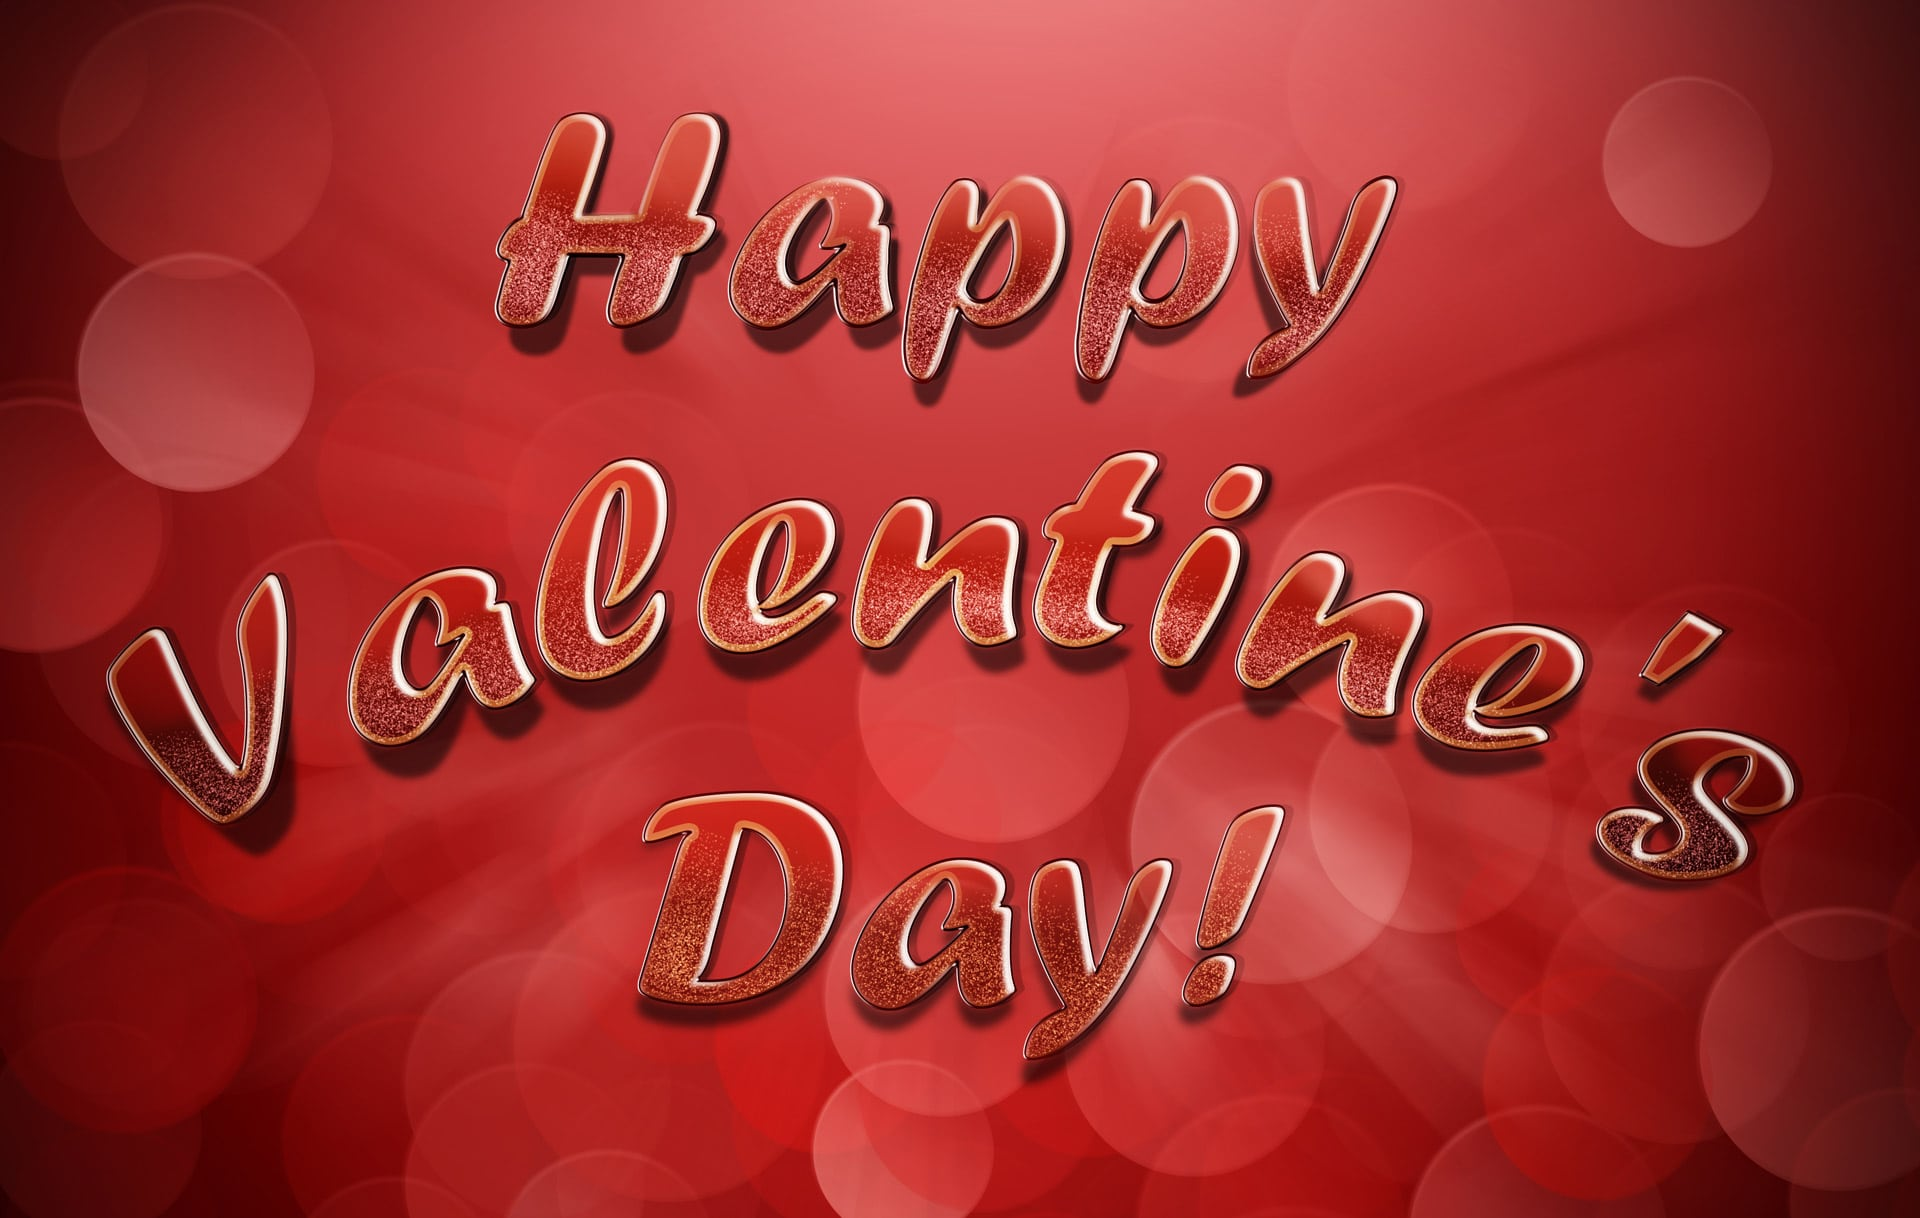 Happy Valentine's day Images and HD wallpapers